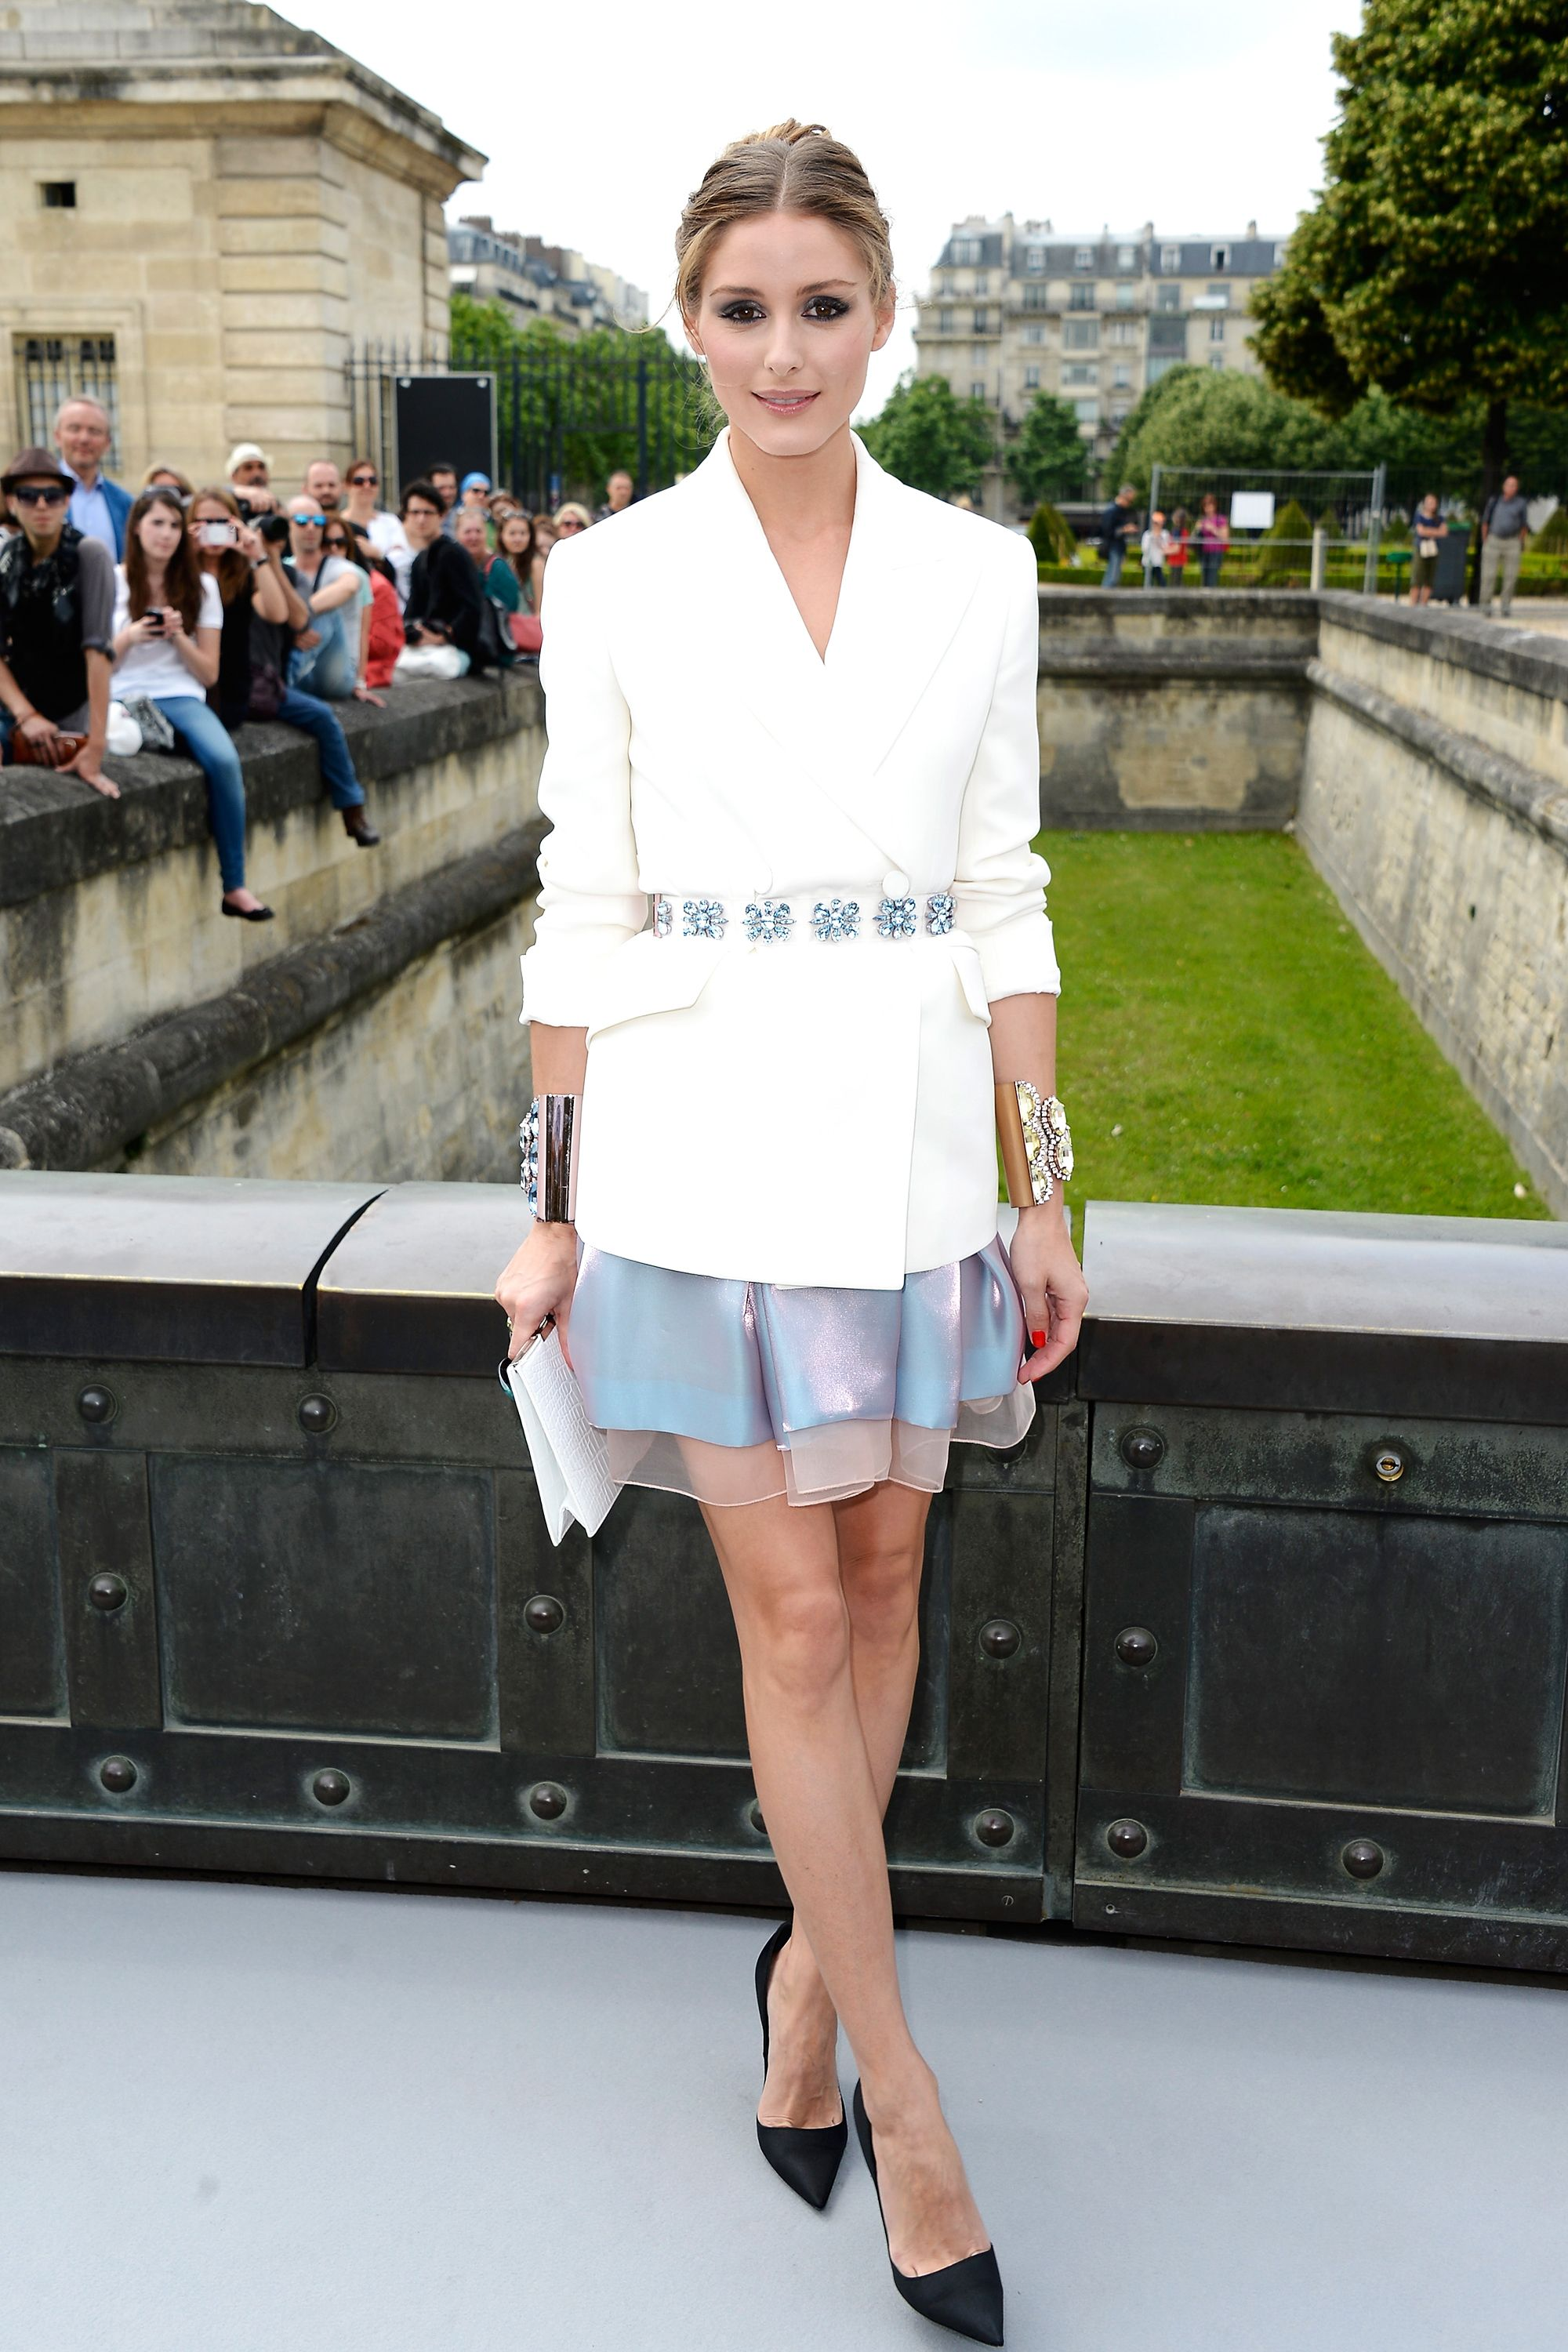 PARIS, FRANCE - JULY 01:  Olivia Palermo attends the Christian Dior show as part of Paris Fashion Week Haute-Couture Fall/Winter 2013-2014 at Hotel Des Invalides on July 1, 2013 in Paris, France.  (Photo by Pascal Le Segretain/Getty Images)